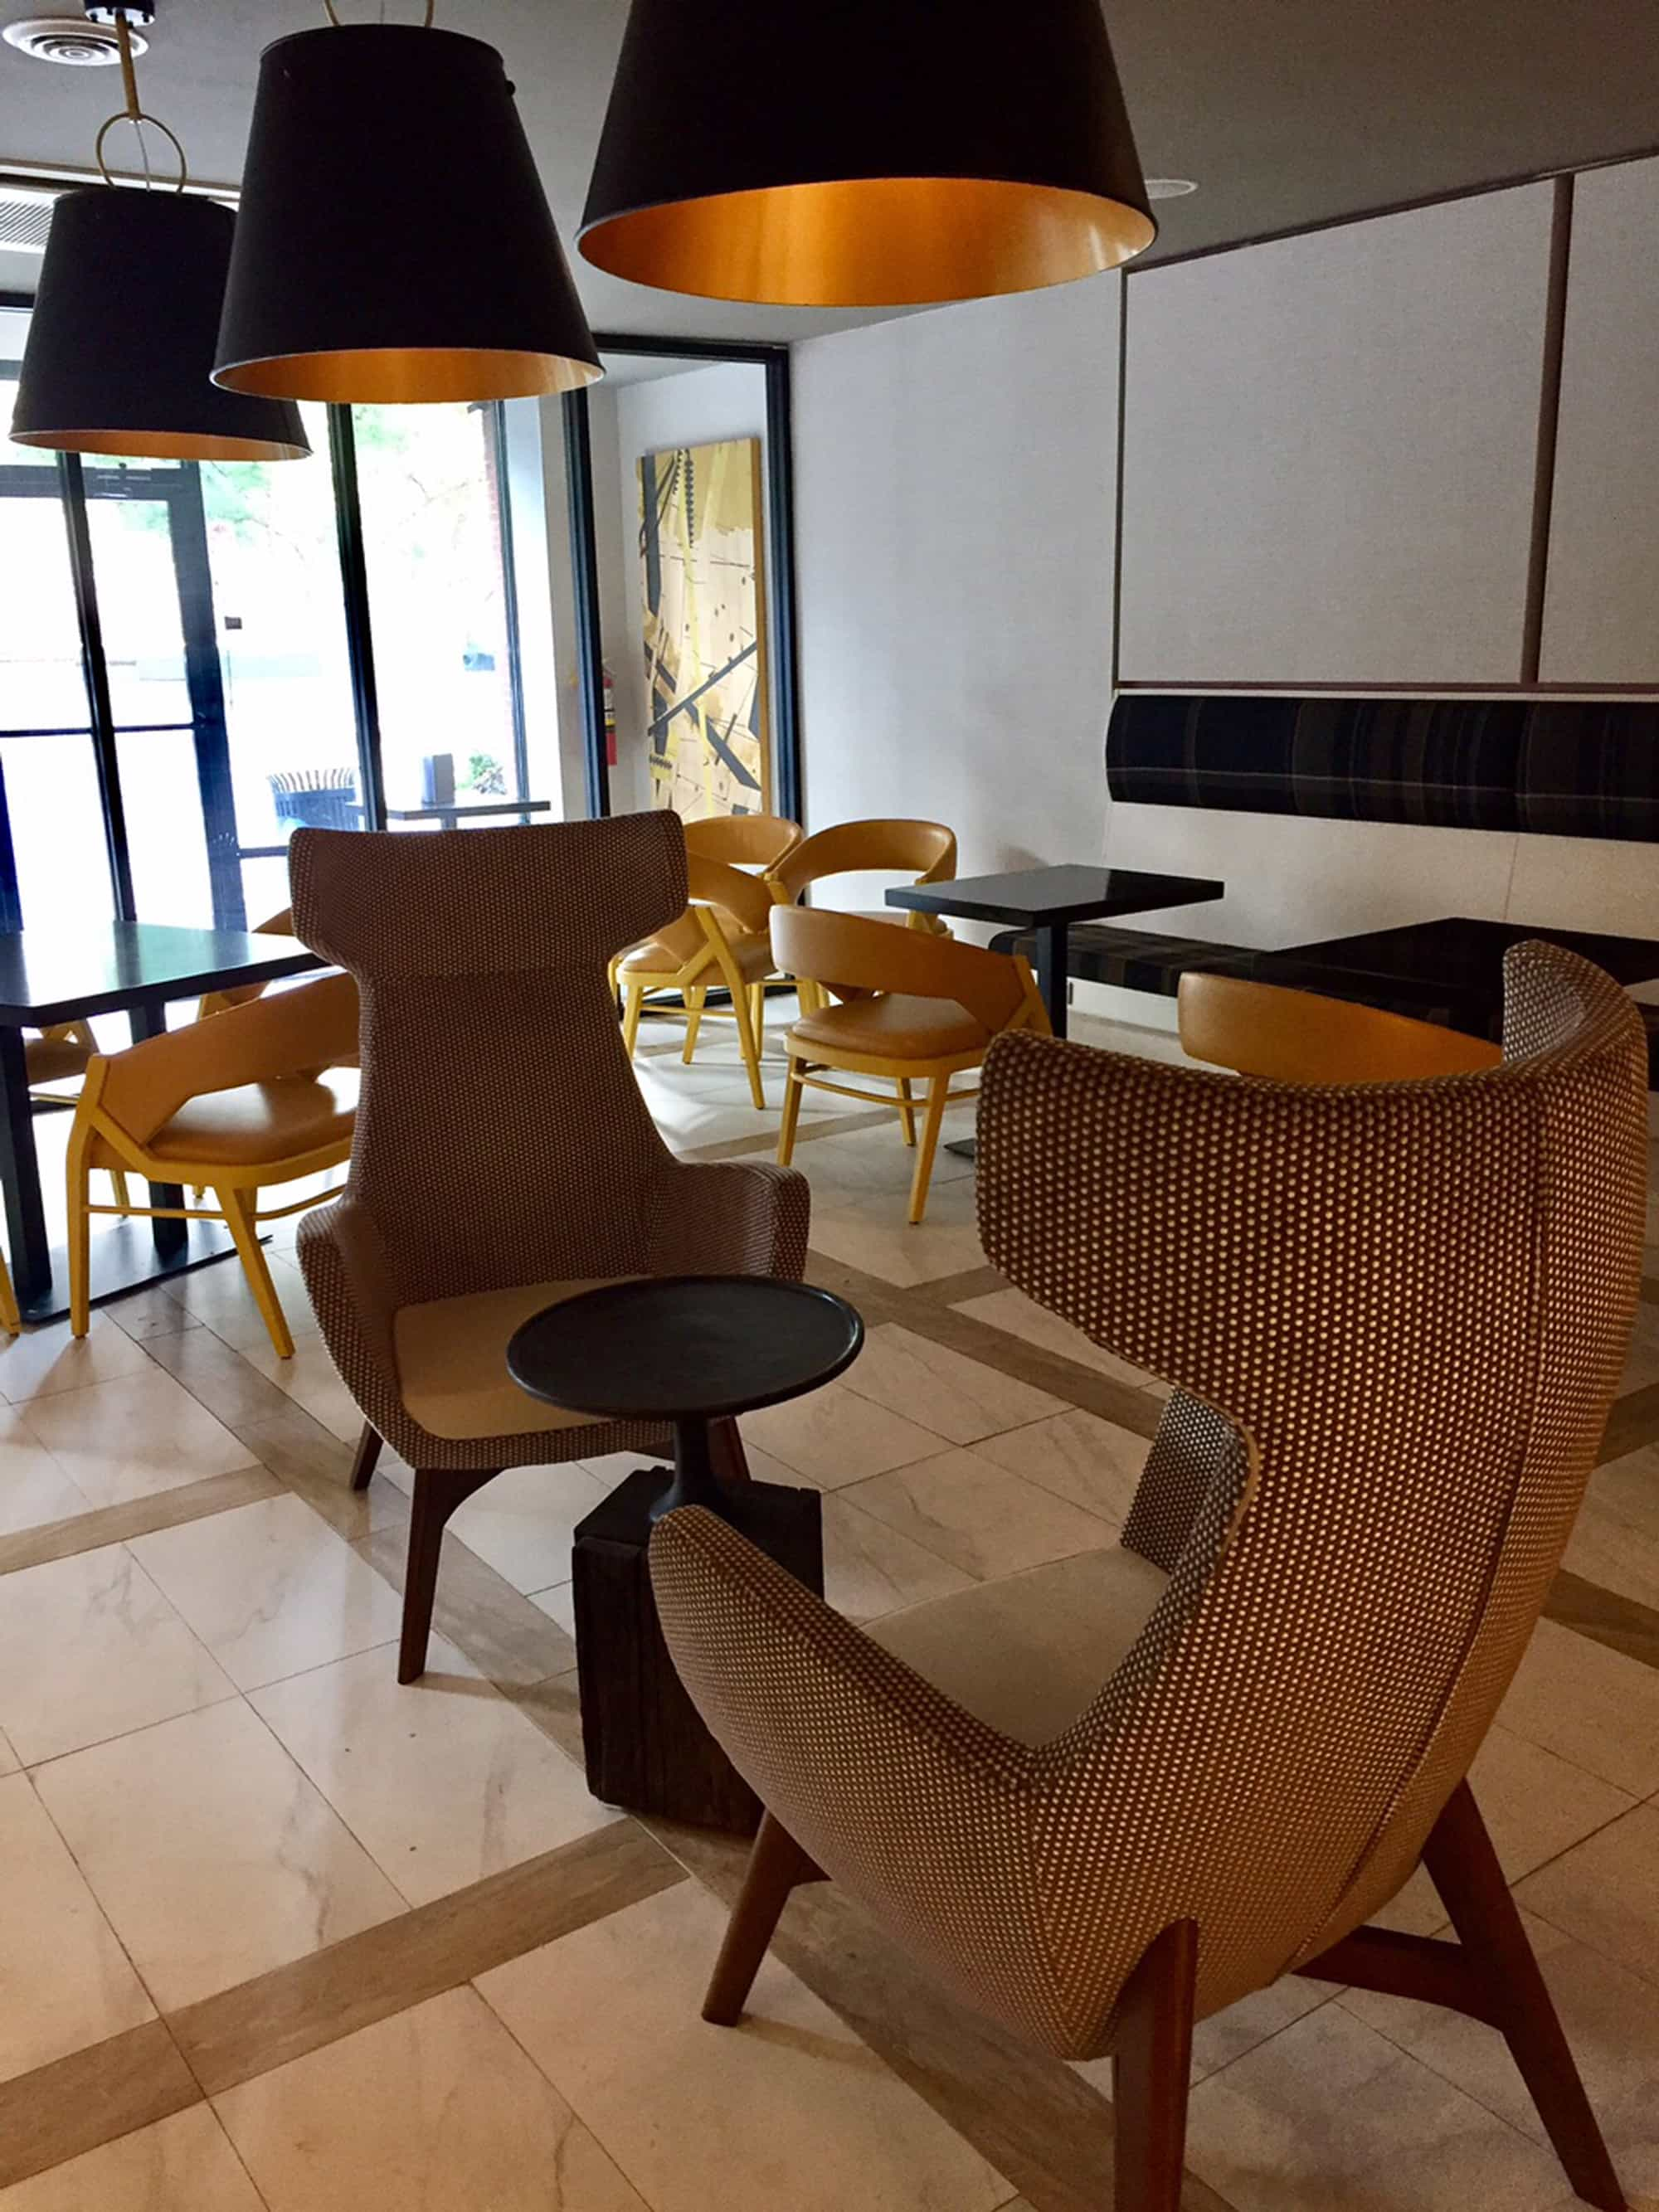 I was also impressed with the stylish lounge space adjoining the ...